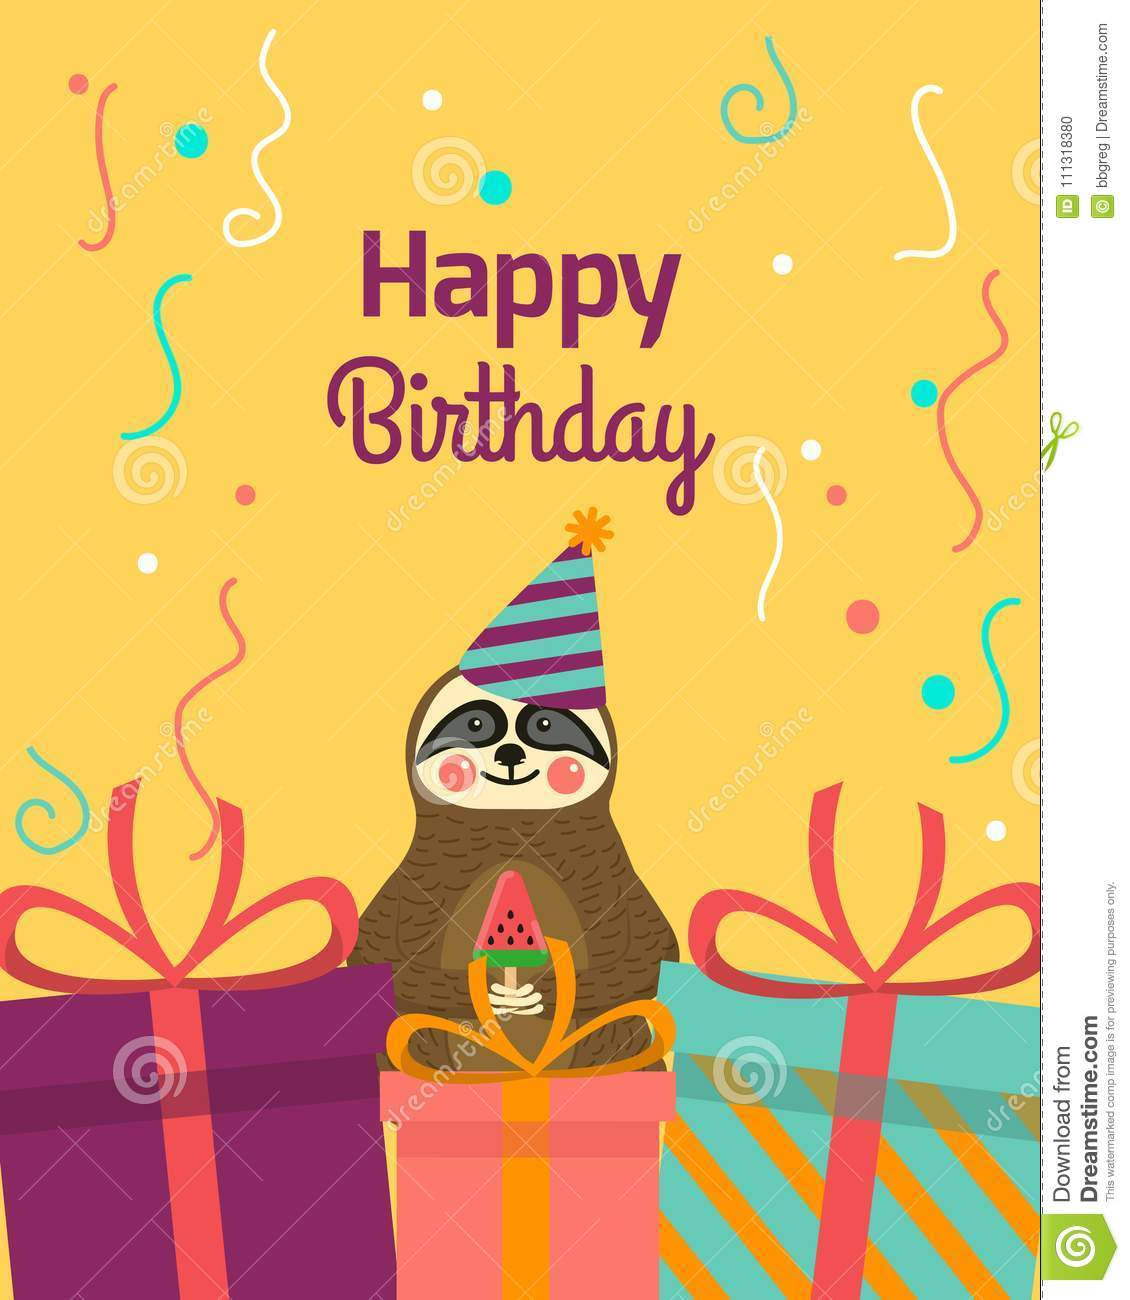 Happy Birthday Greeting Templates Invitation Cards To The Party